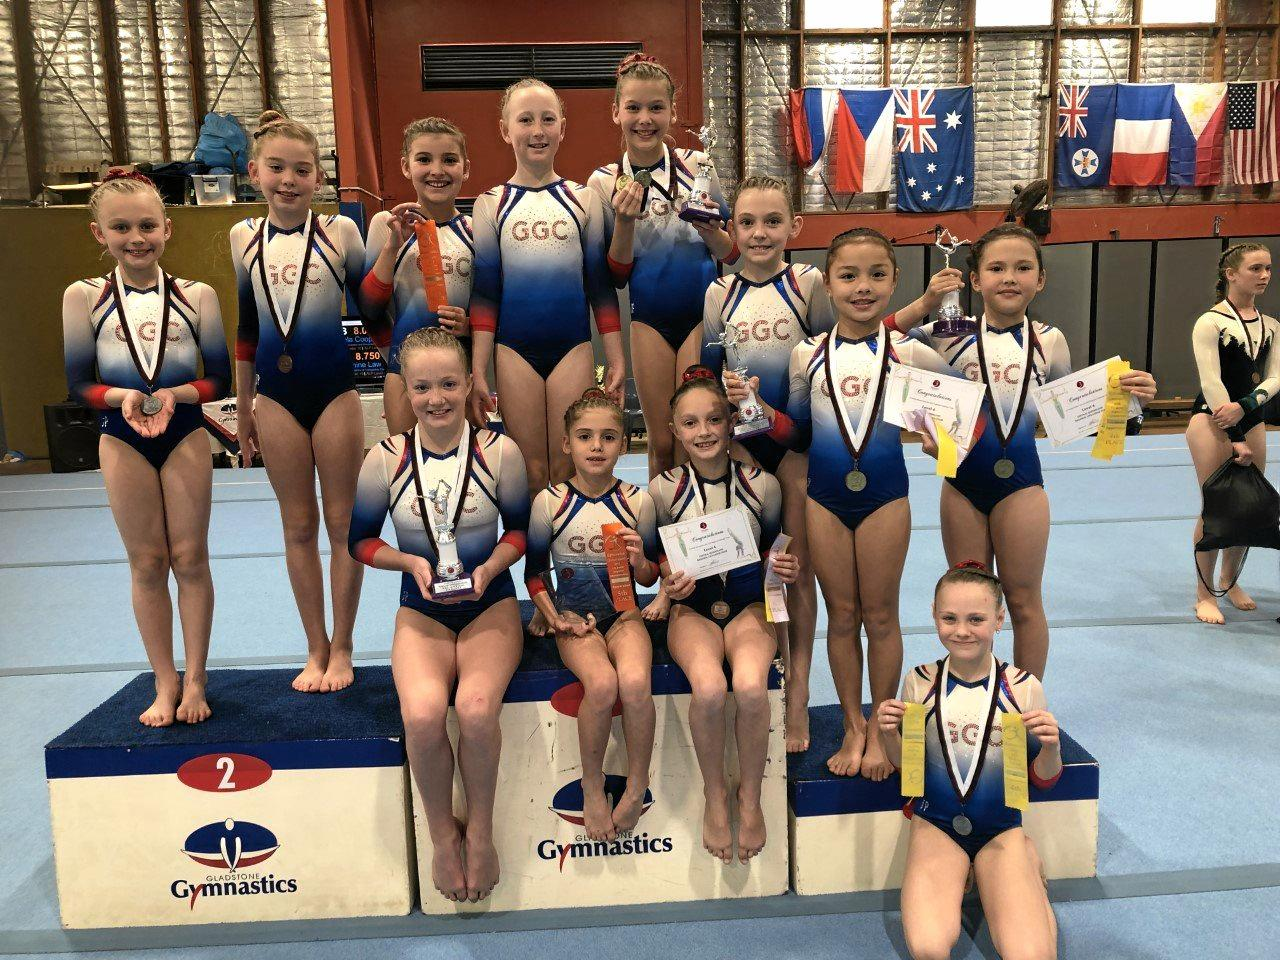 Photo 3: WAG level 4Mia Hetherington, Amelia Deane, Bronte Ellis, Keeley Glass, Mackenzie Stormonth, Evie MacNamara, Alissa Waner, Jasmine Miller, Sienna Knedrick, Indiana Peters, Ashlyn Nancarrow, Maya Brown